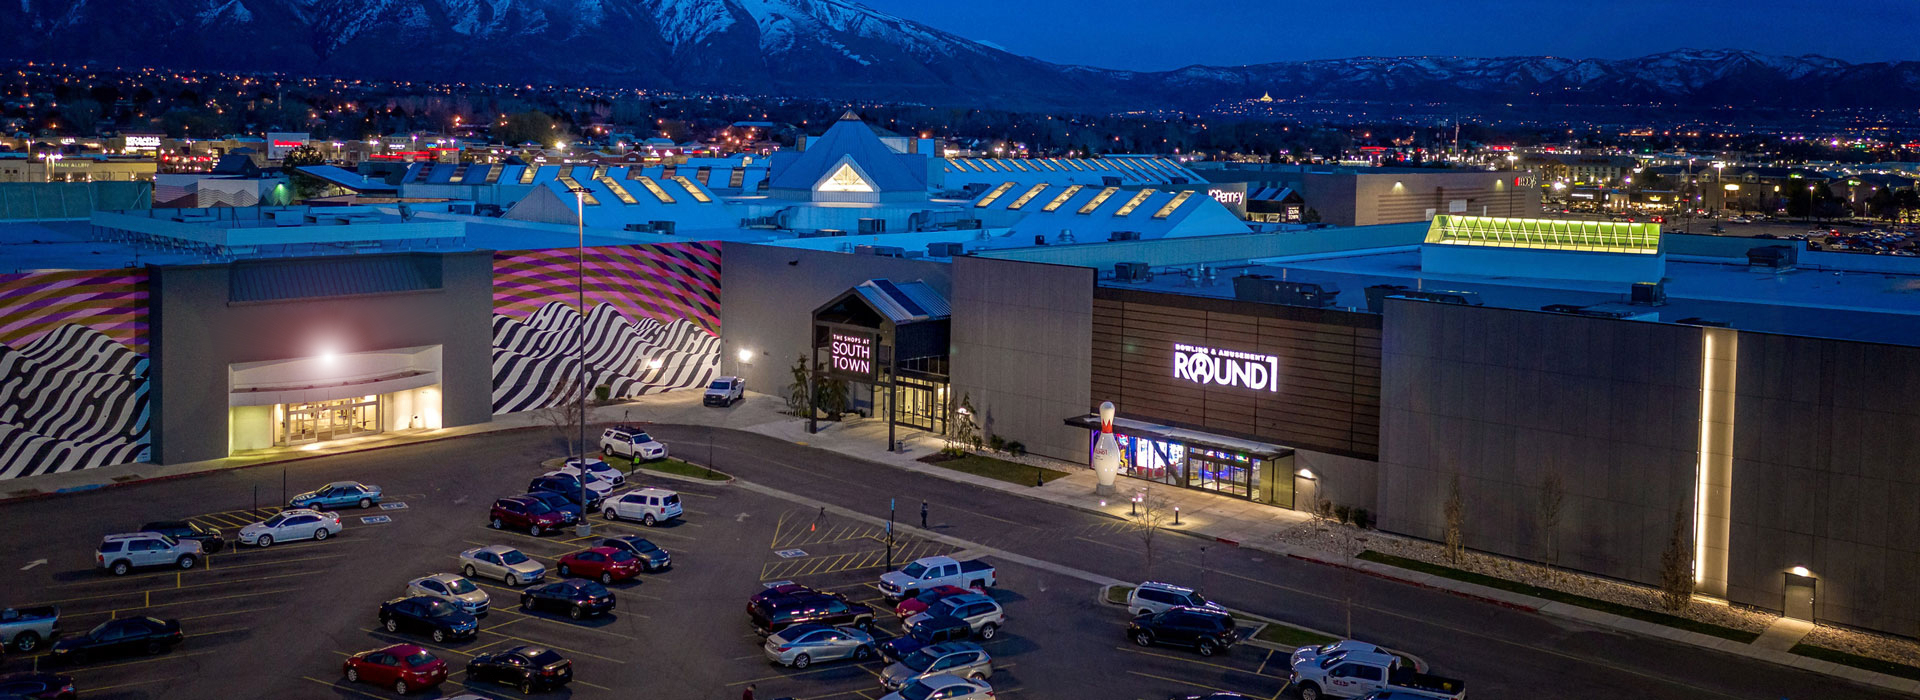 Premier Shopping In Sandy, Ut   For South Town Expo Schedule Utah